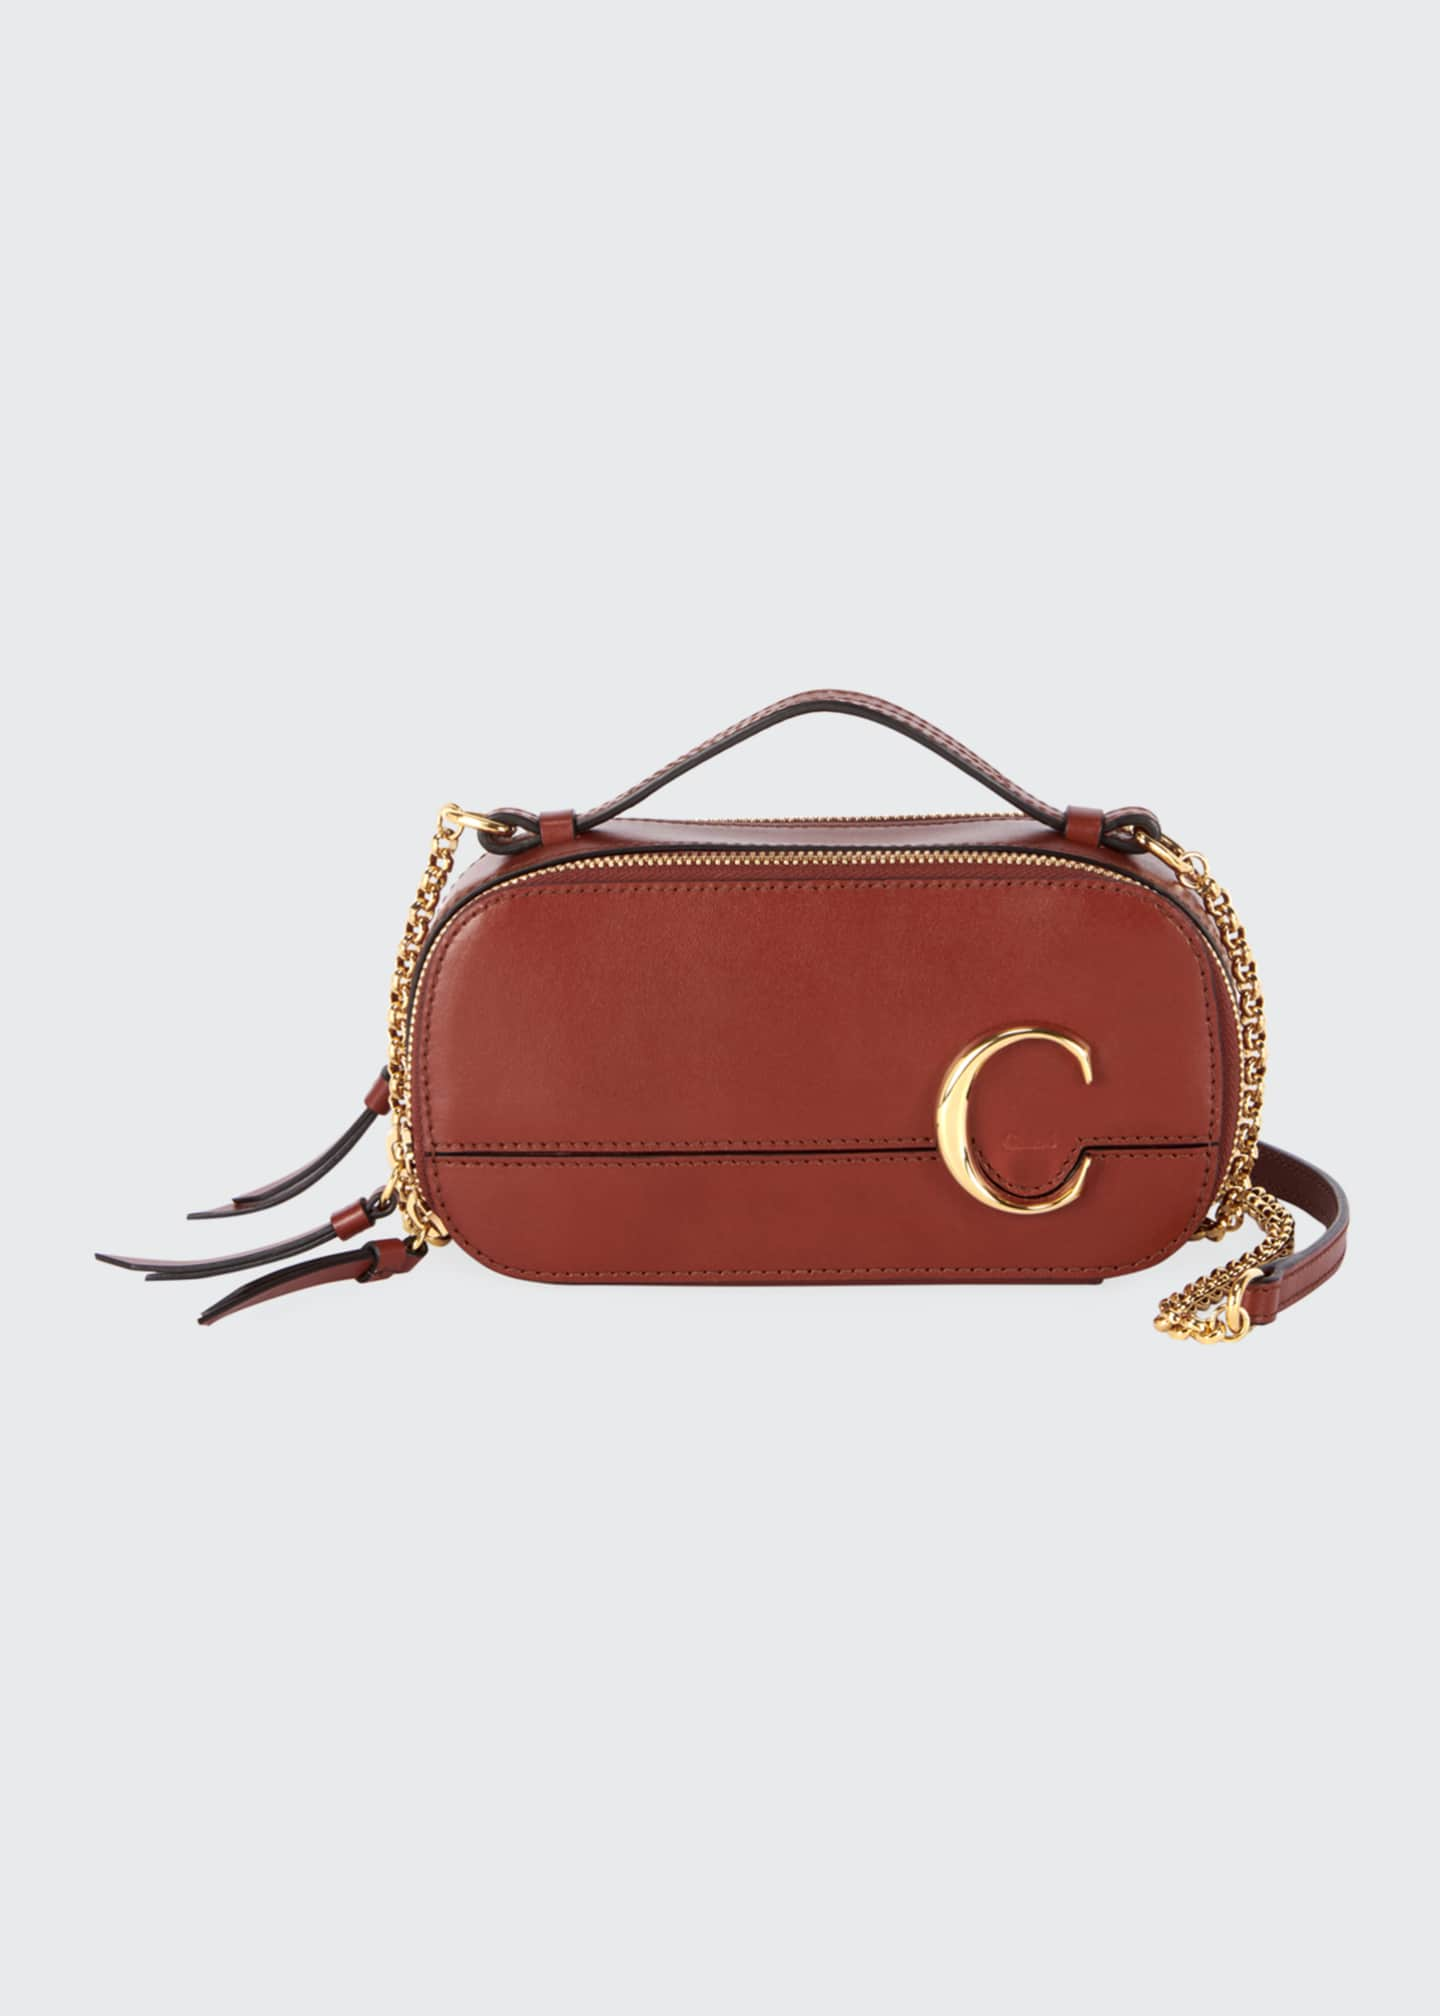 Chloe C Multi Compact Crossbody Bag